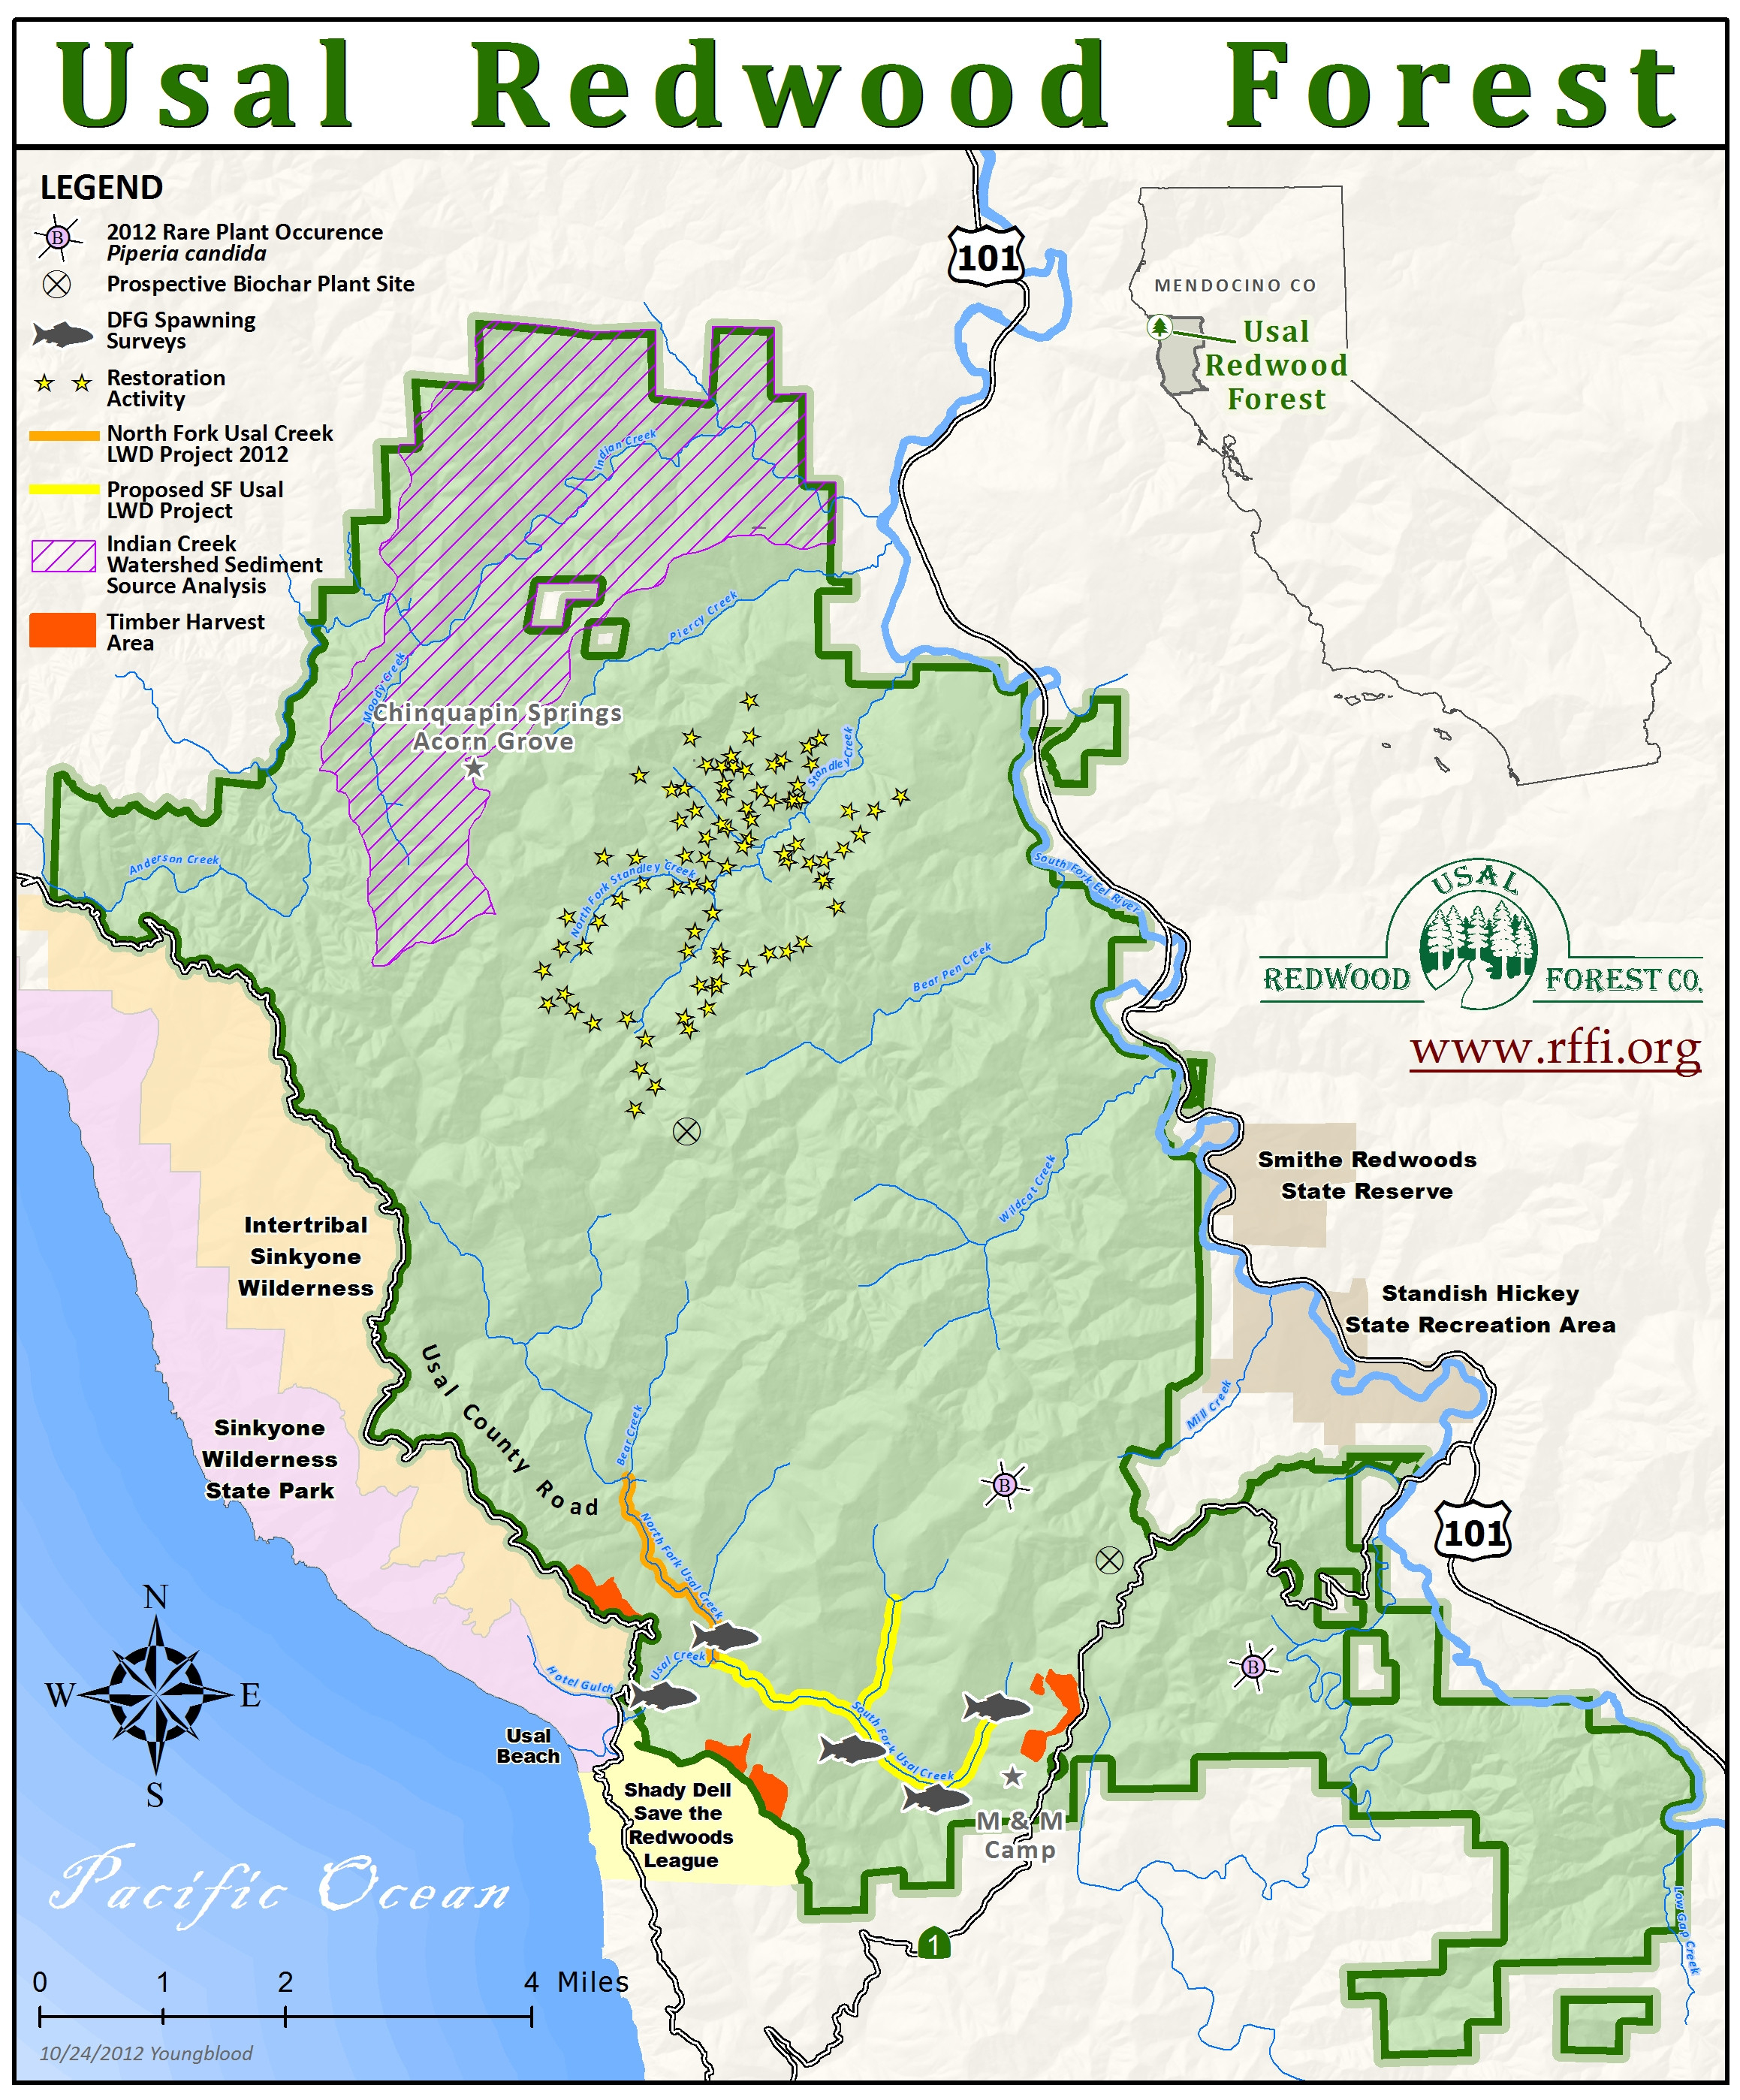 Map Of Redwood Forests In California Printable Redwood Location On - Where Is The Redwood Forest In California On A Map